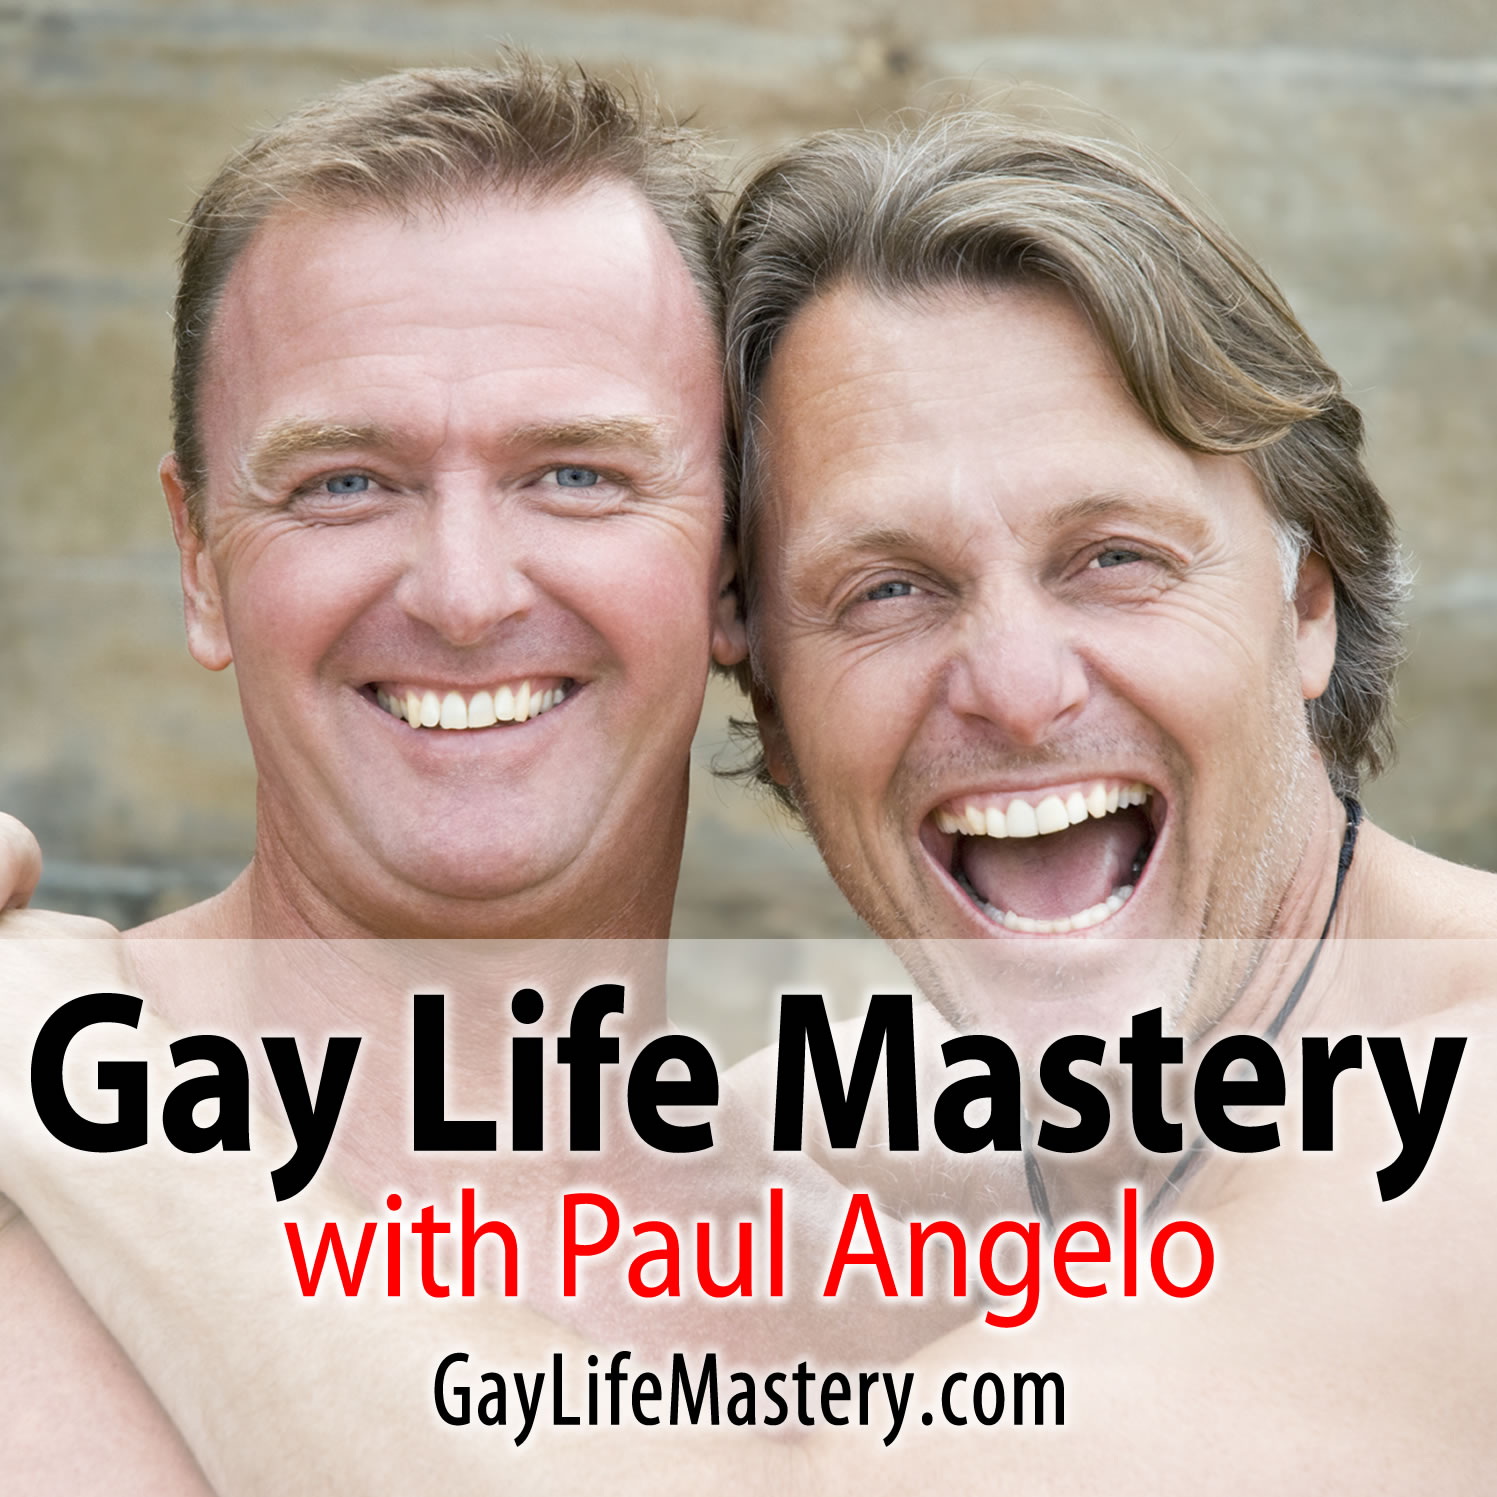 Gay Life Coaching: Authenticity Required For Happy Gay Life